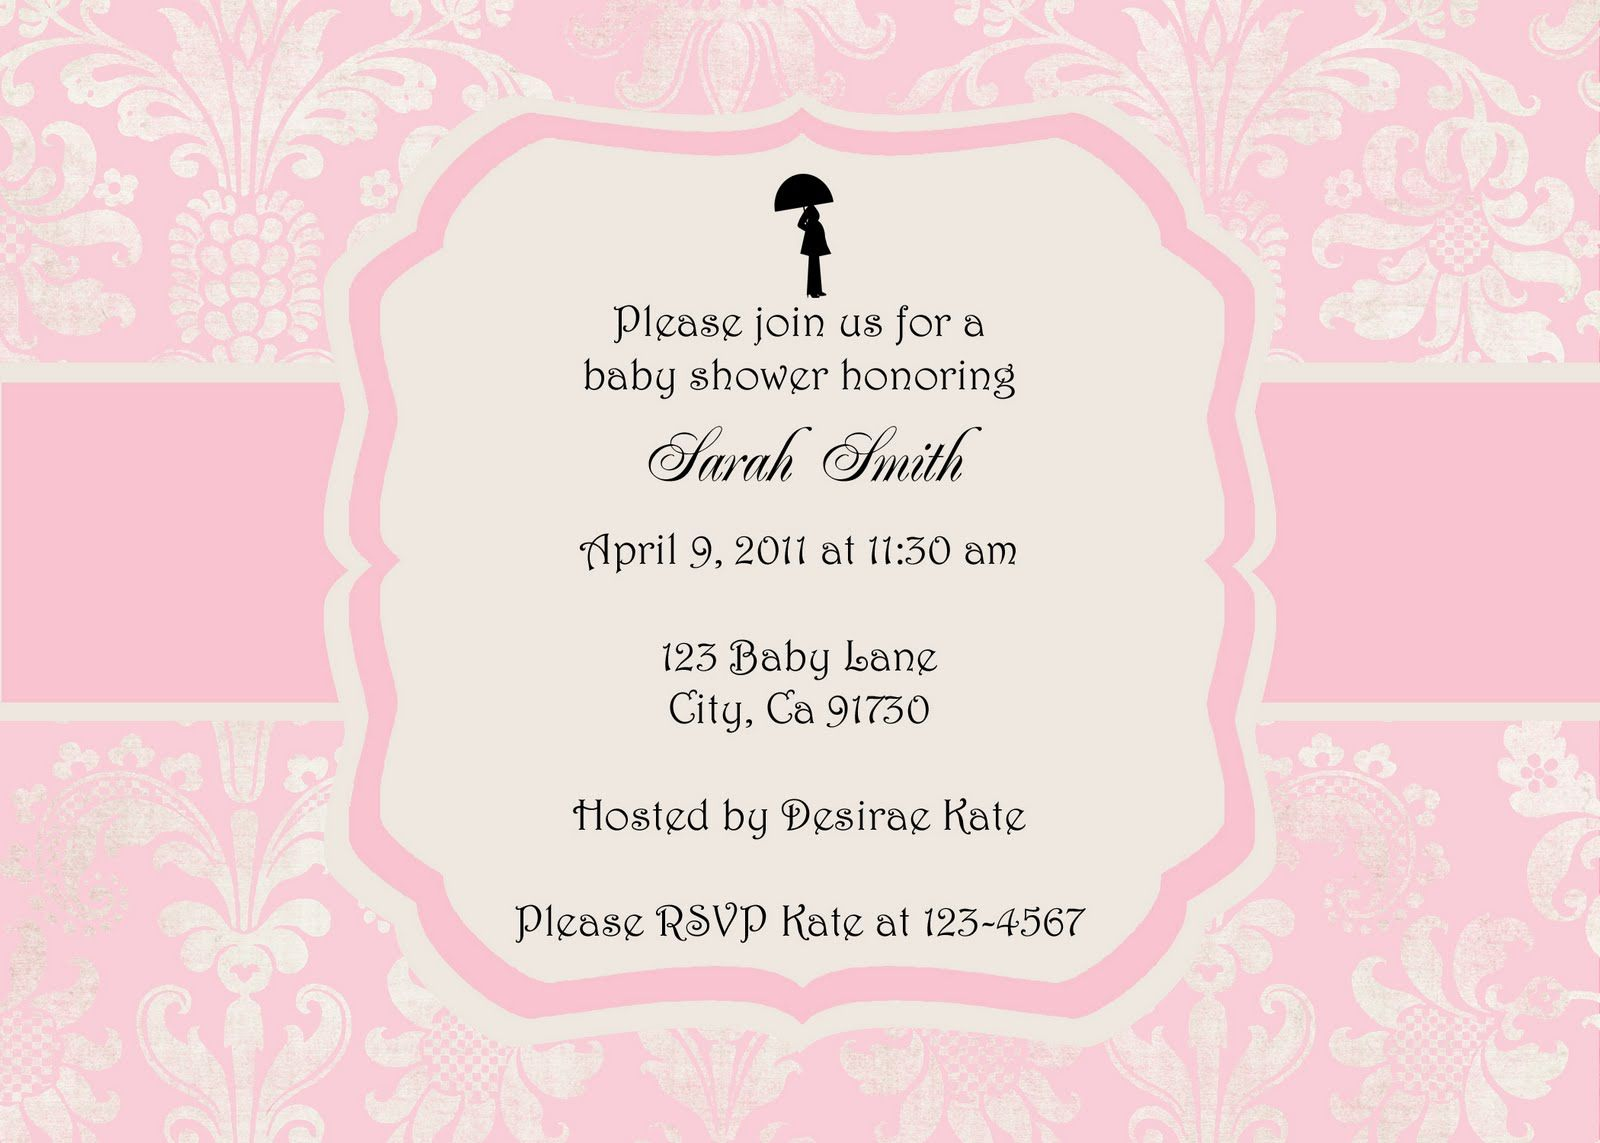 handcrafted baby shower invitations designed beautifully